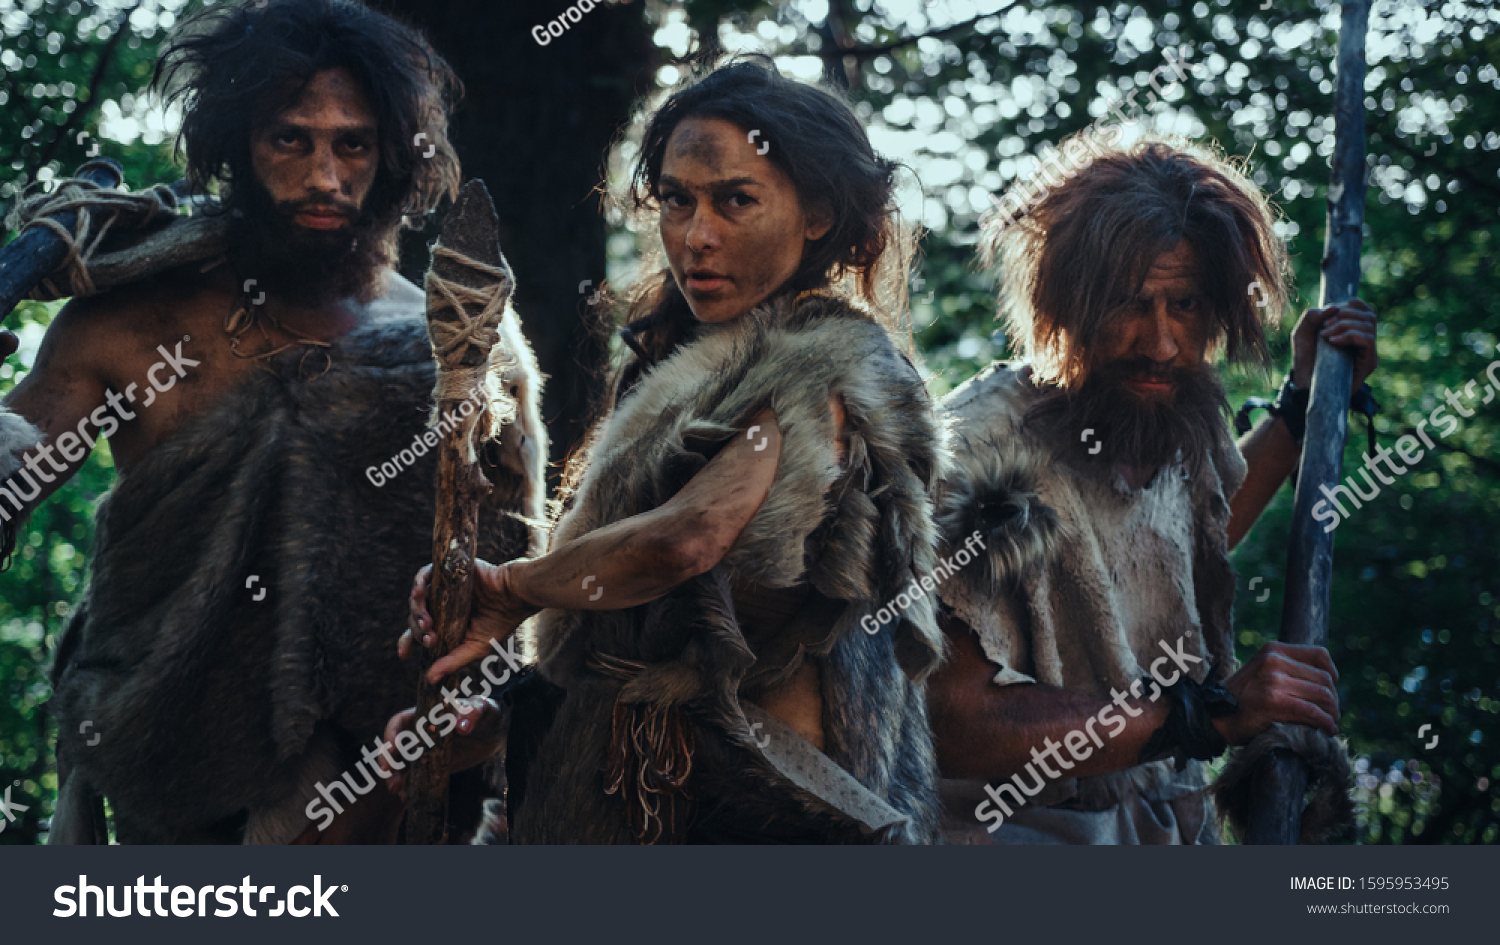 Female Leader and Two Primeval Cavemen Warriors Threat Enemy with Stone Tipped Spear, Scream, Defending Their Cave and Territory in the Prehistoric Times. Neanderthals / Homo Sapiens Tribe #1595953495